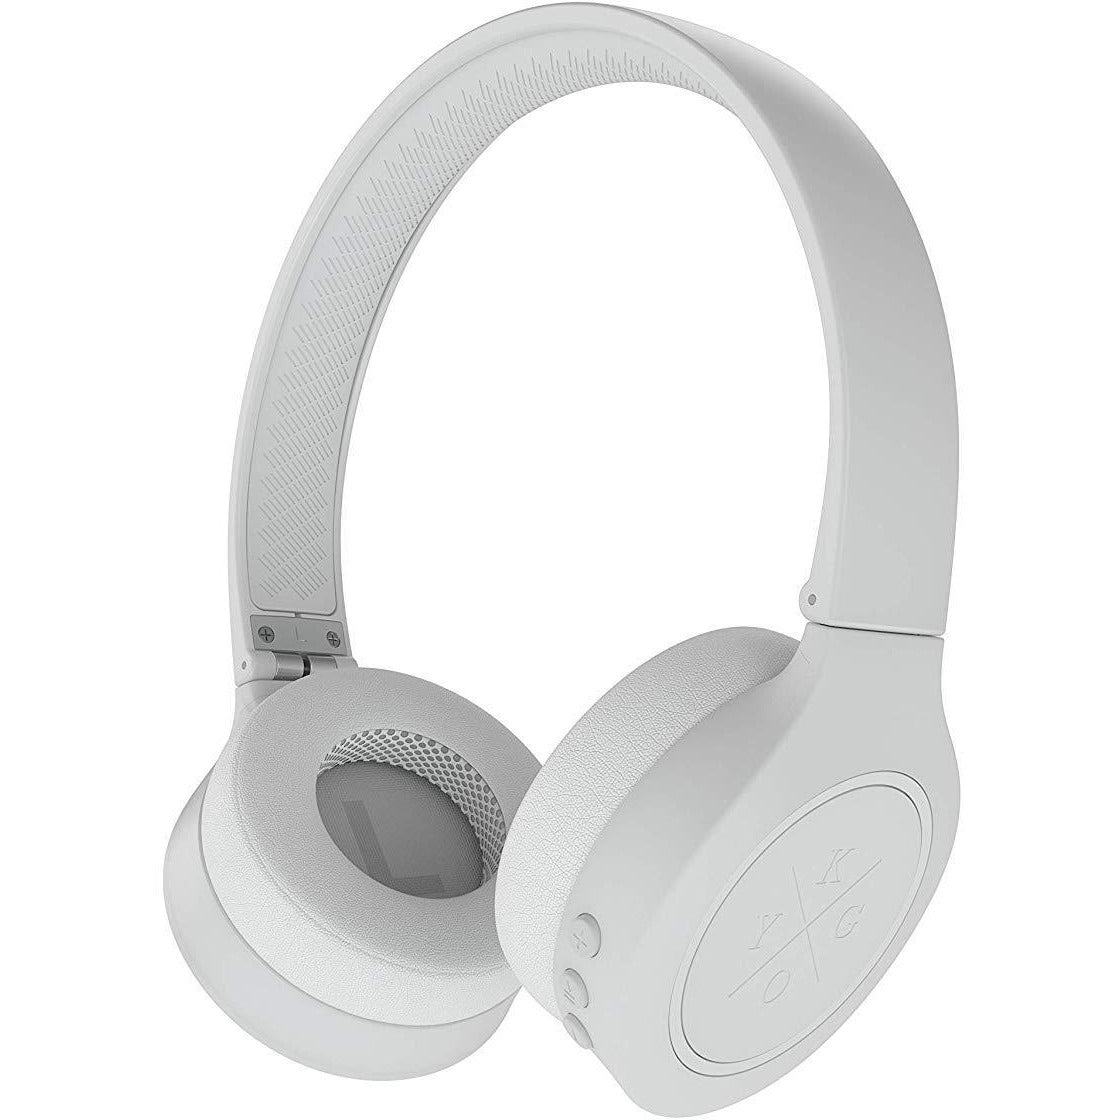 Kygo A4/300 Wireless Bluetooth 4.2 On Ear Headphones - White [Accessories]